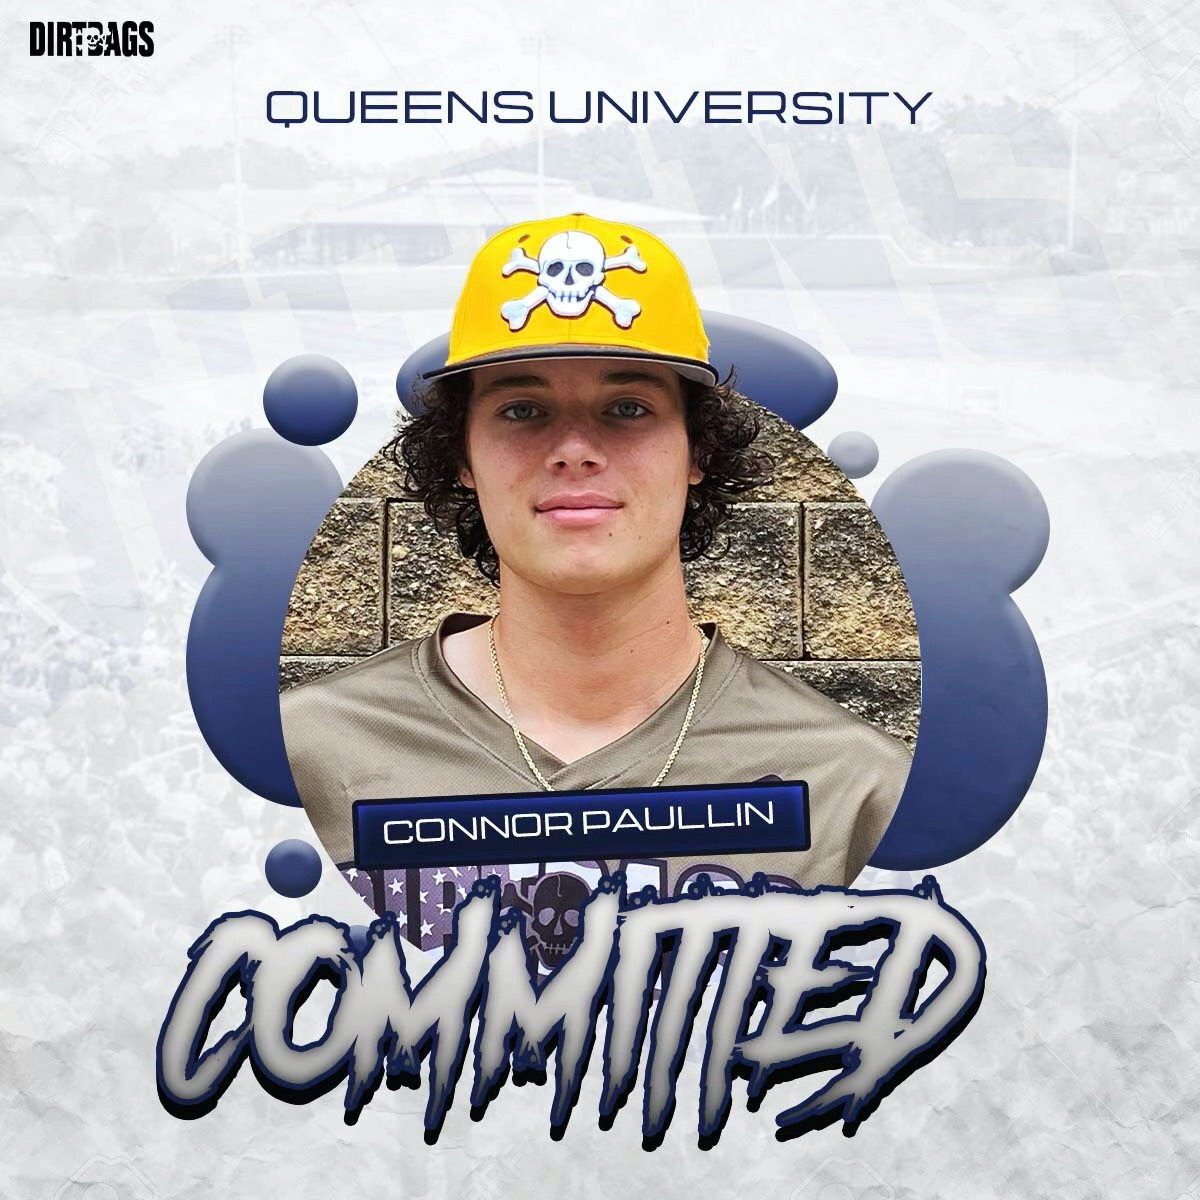 Connor Paullin commits to Queens University